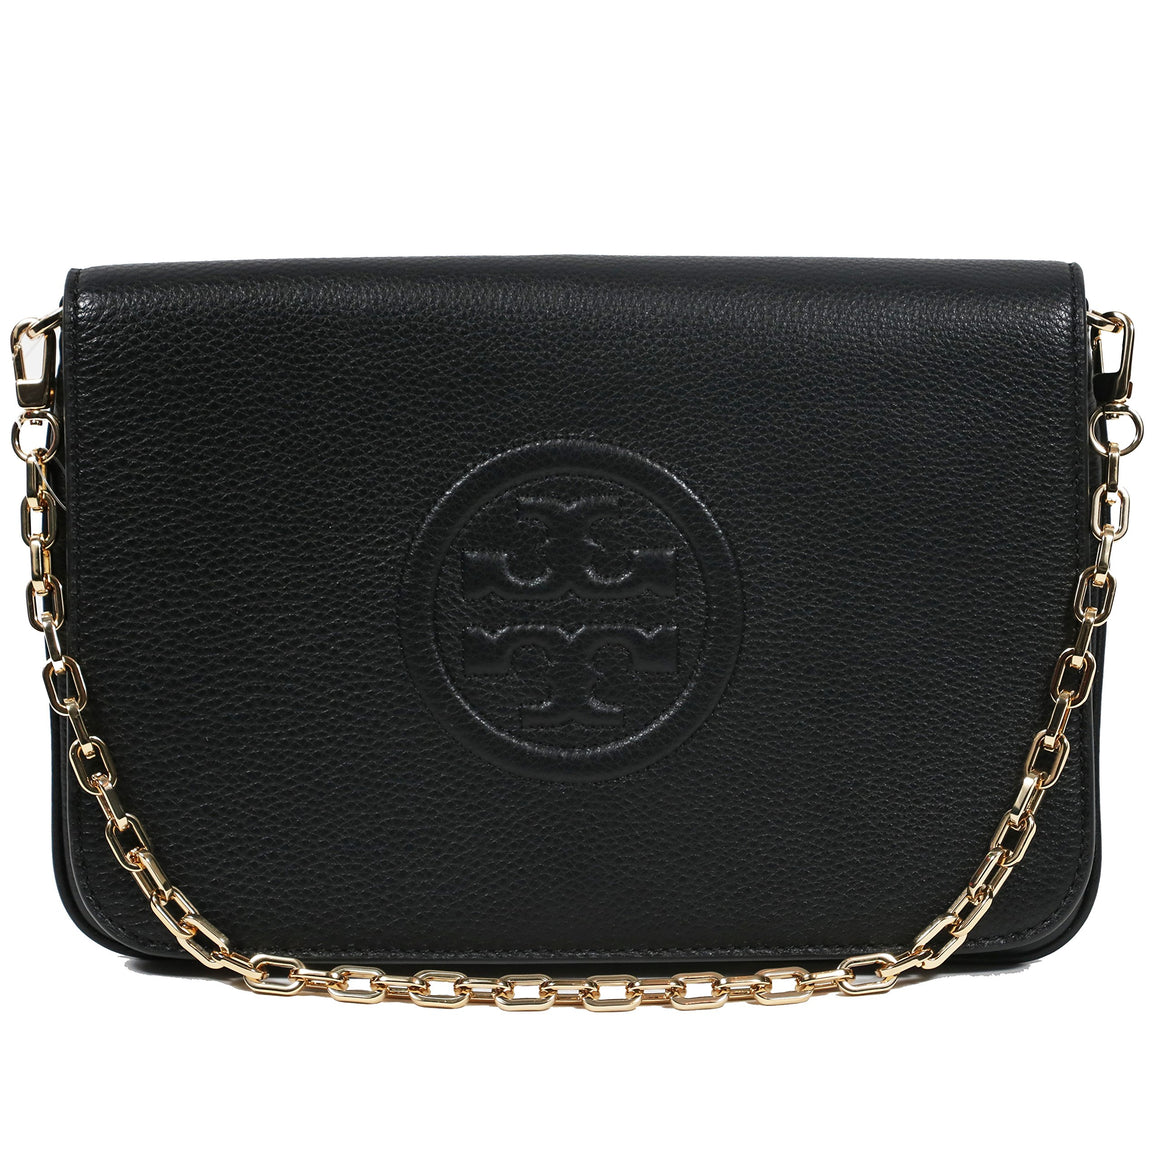 Tory Burch Bombe Convertible Clutch Leather Tb Logo Womens Handbags Tory Burch